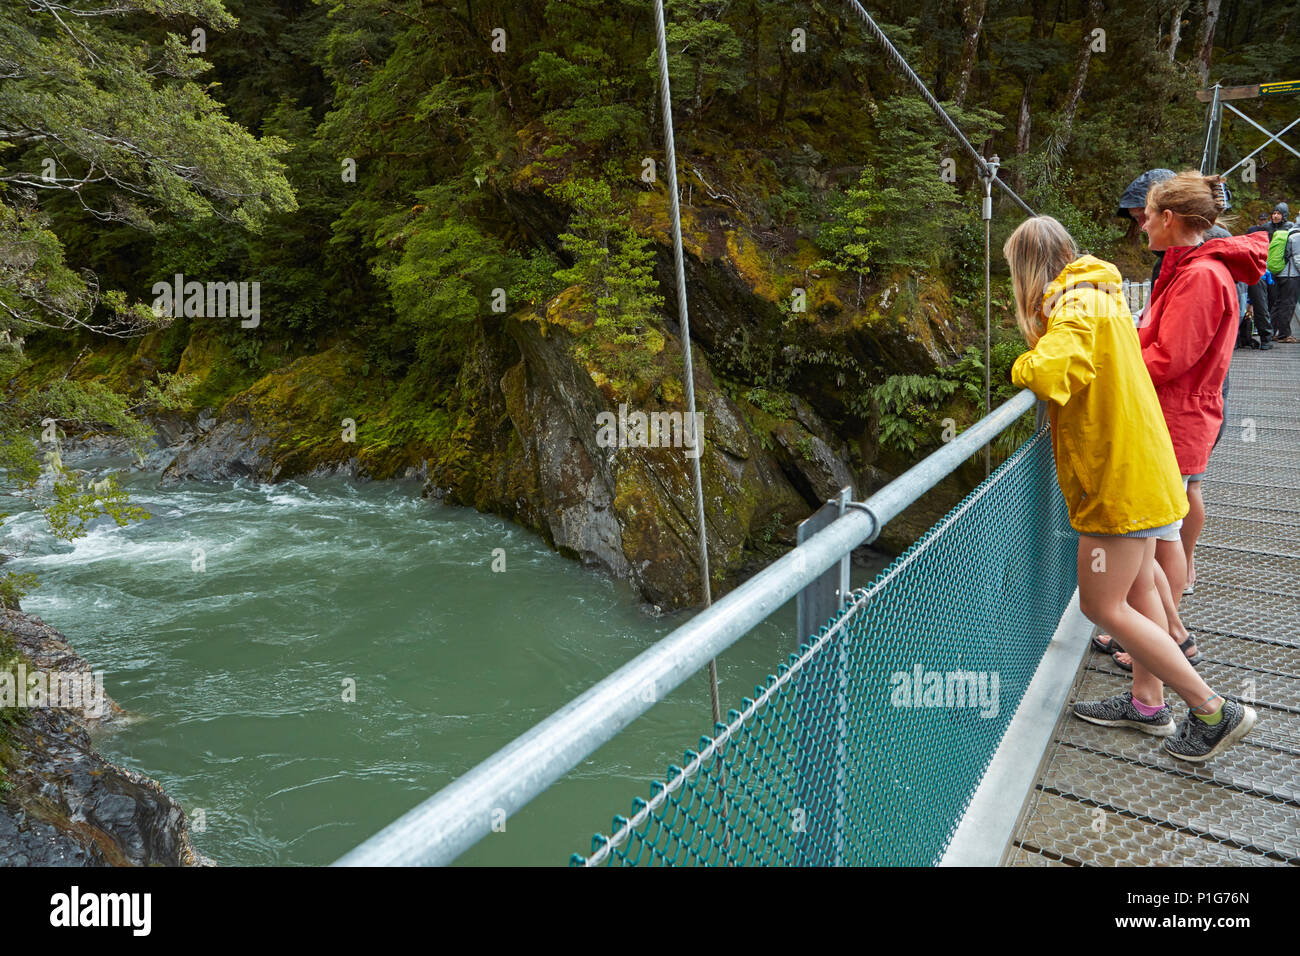 Tourists on footbridge over Blue River, Blue Pools, Mount Aspiring National Park, Haast Pass, near Makarora, Otago, South Island, New Zealand - Stock Image